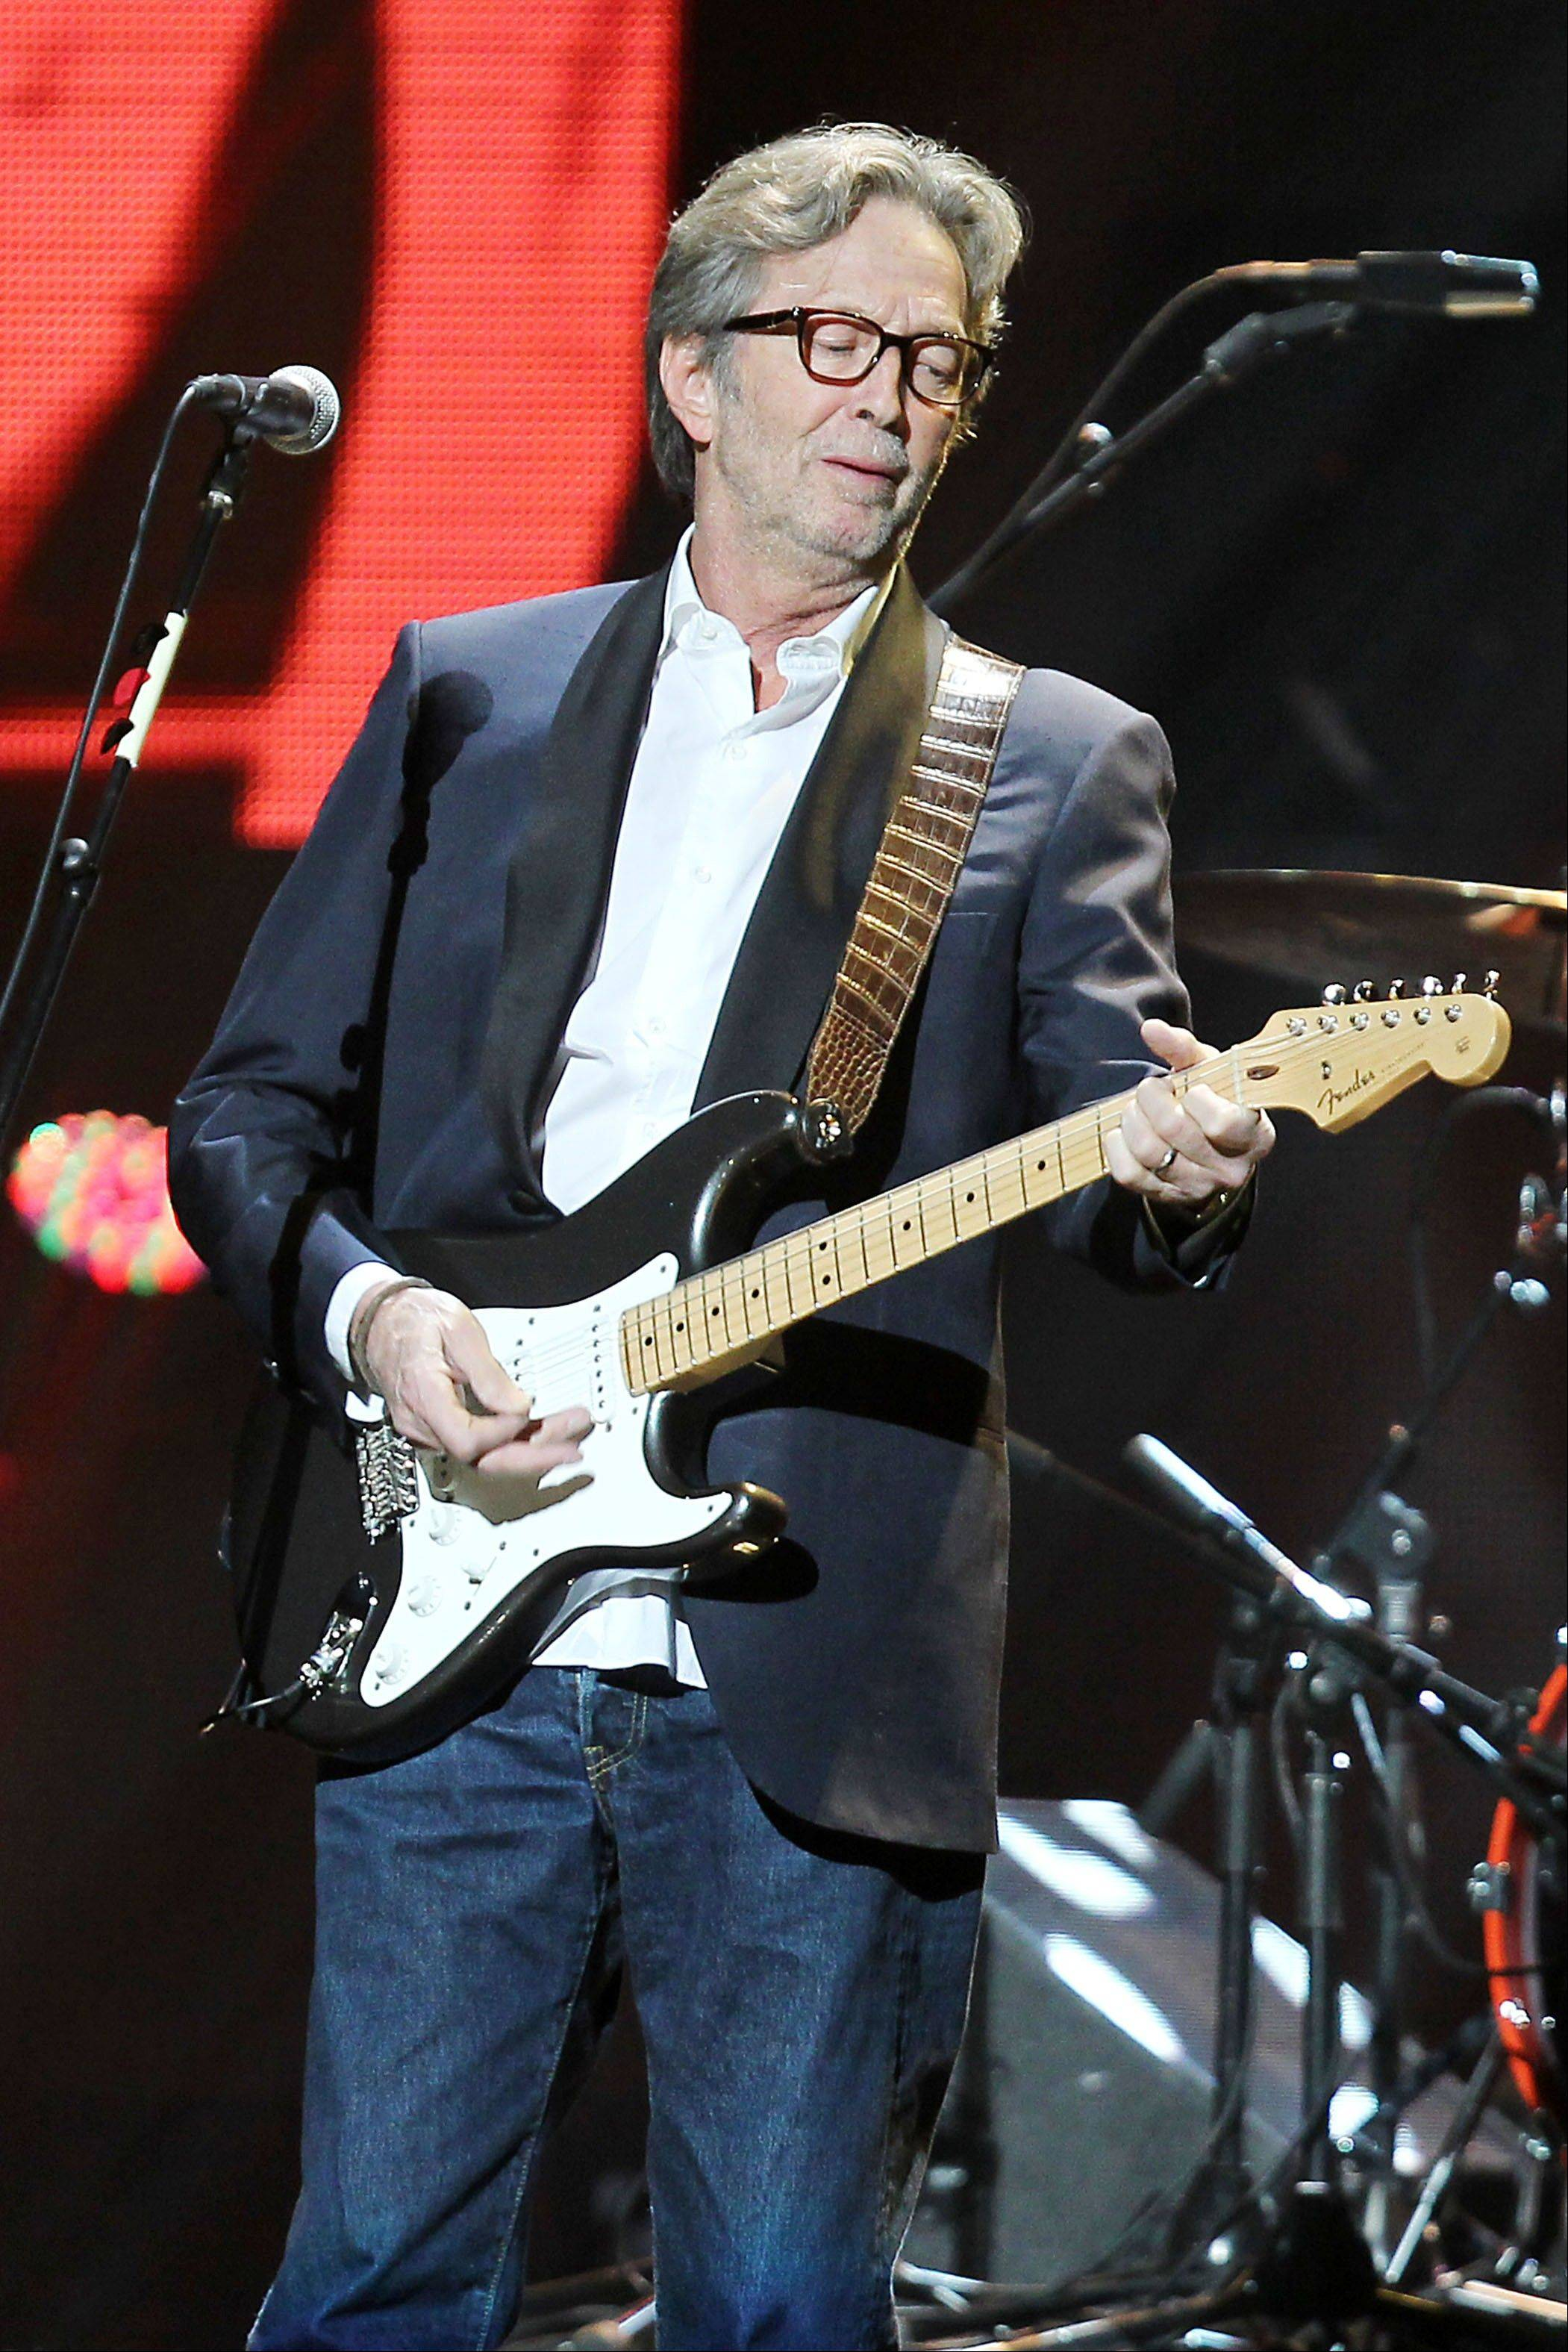 Starpix, Eric Clapton performs on stage at the 12-12-12 The Concert for Sandy Relief at Madison Square Garden in New York. The over $50 million in proceeds from the show were distributed through the Robin Hood Foundation to largely small, grassroots groups on the storm-devastated New York and New Jersey coastlines.